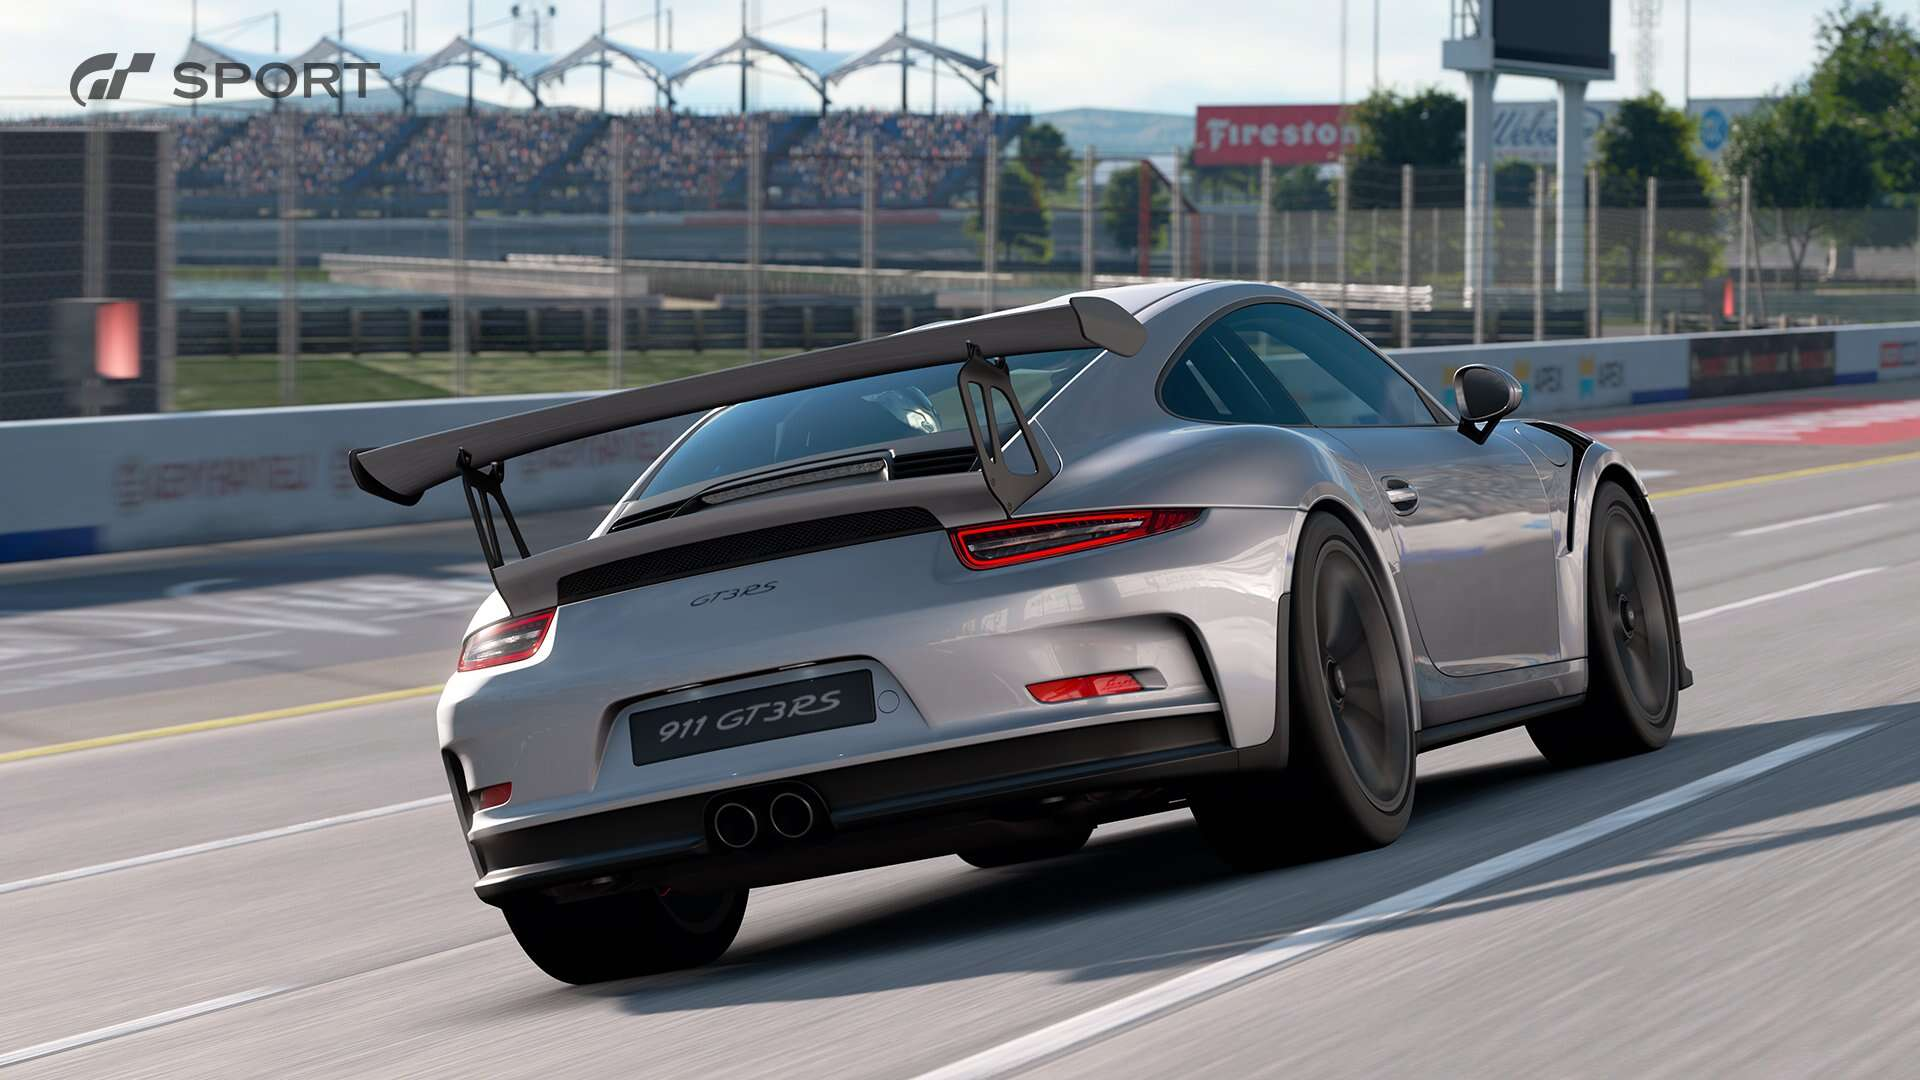 Porsche Models Confirmed for Gran Turismo Sport - The Drive